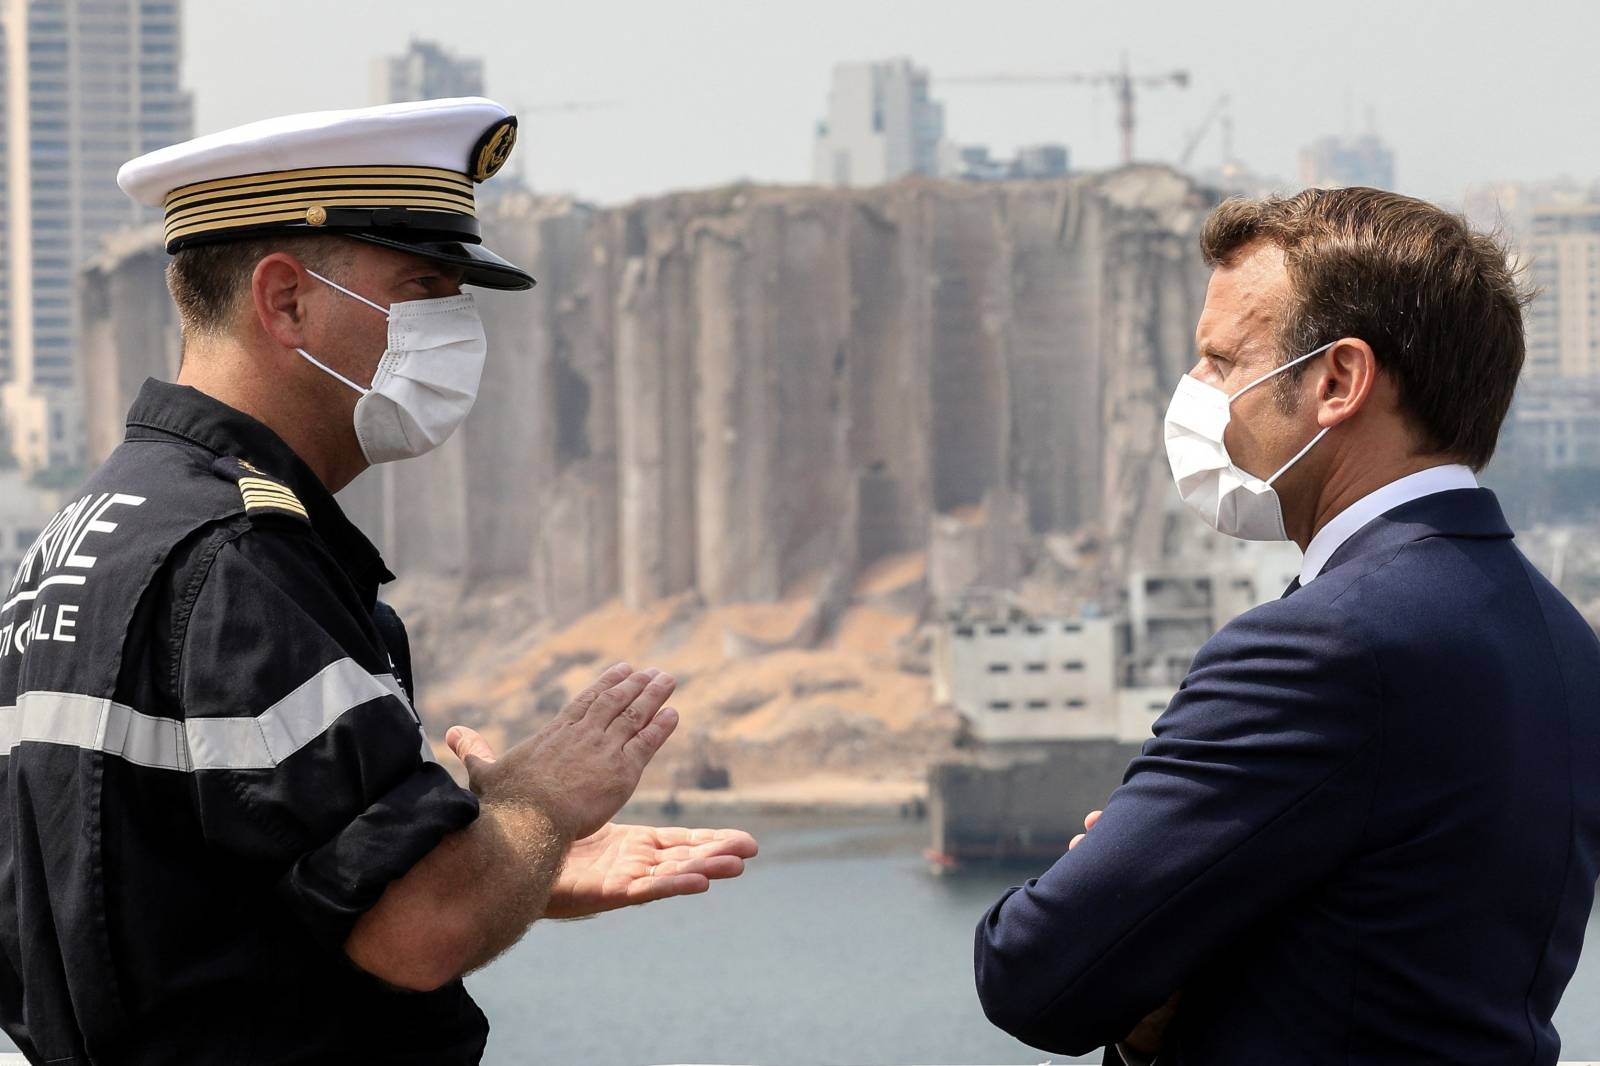 French President Macron visits the port area of Beirut